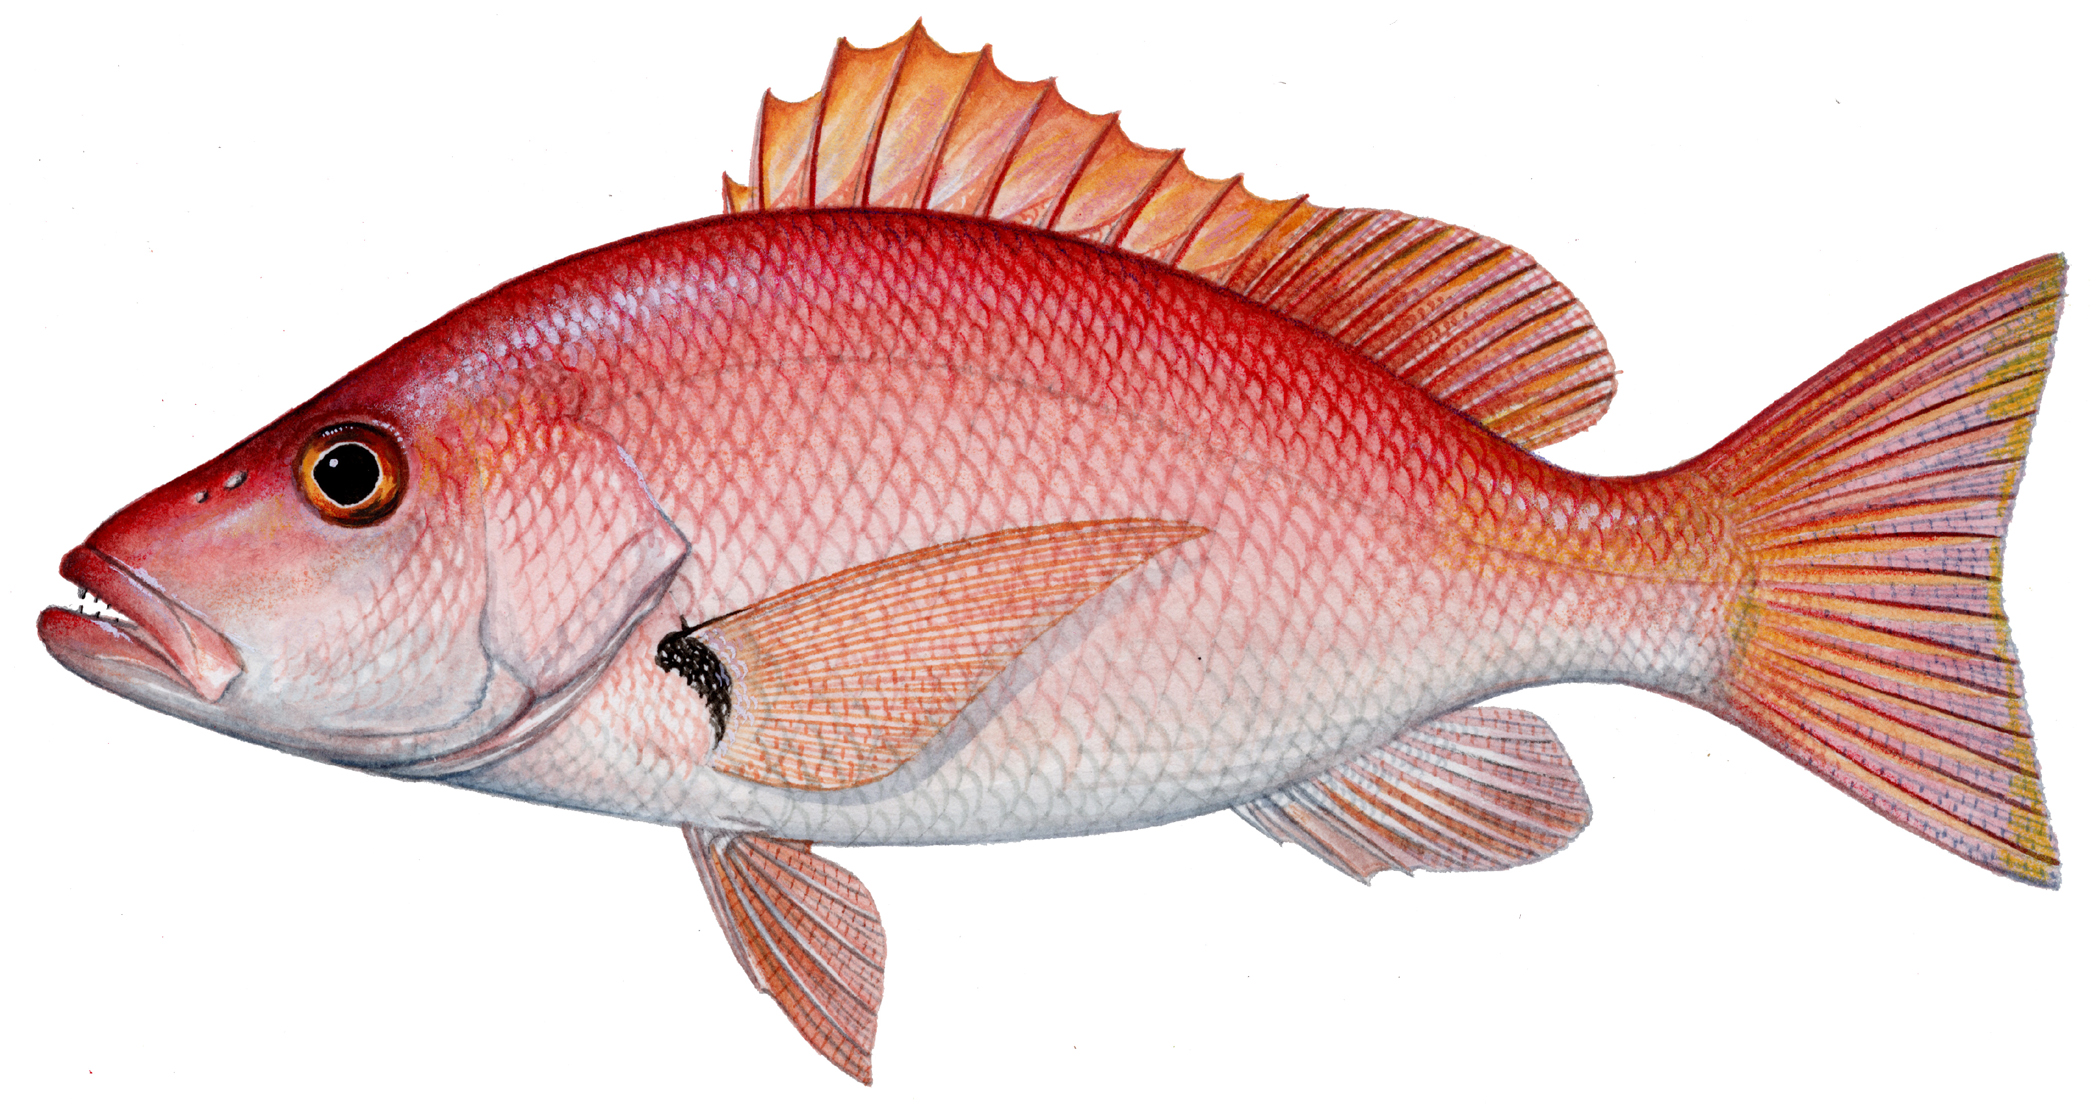 10 days to fish for snapper in federal waters the post for Red snapper fish